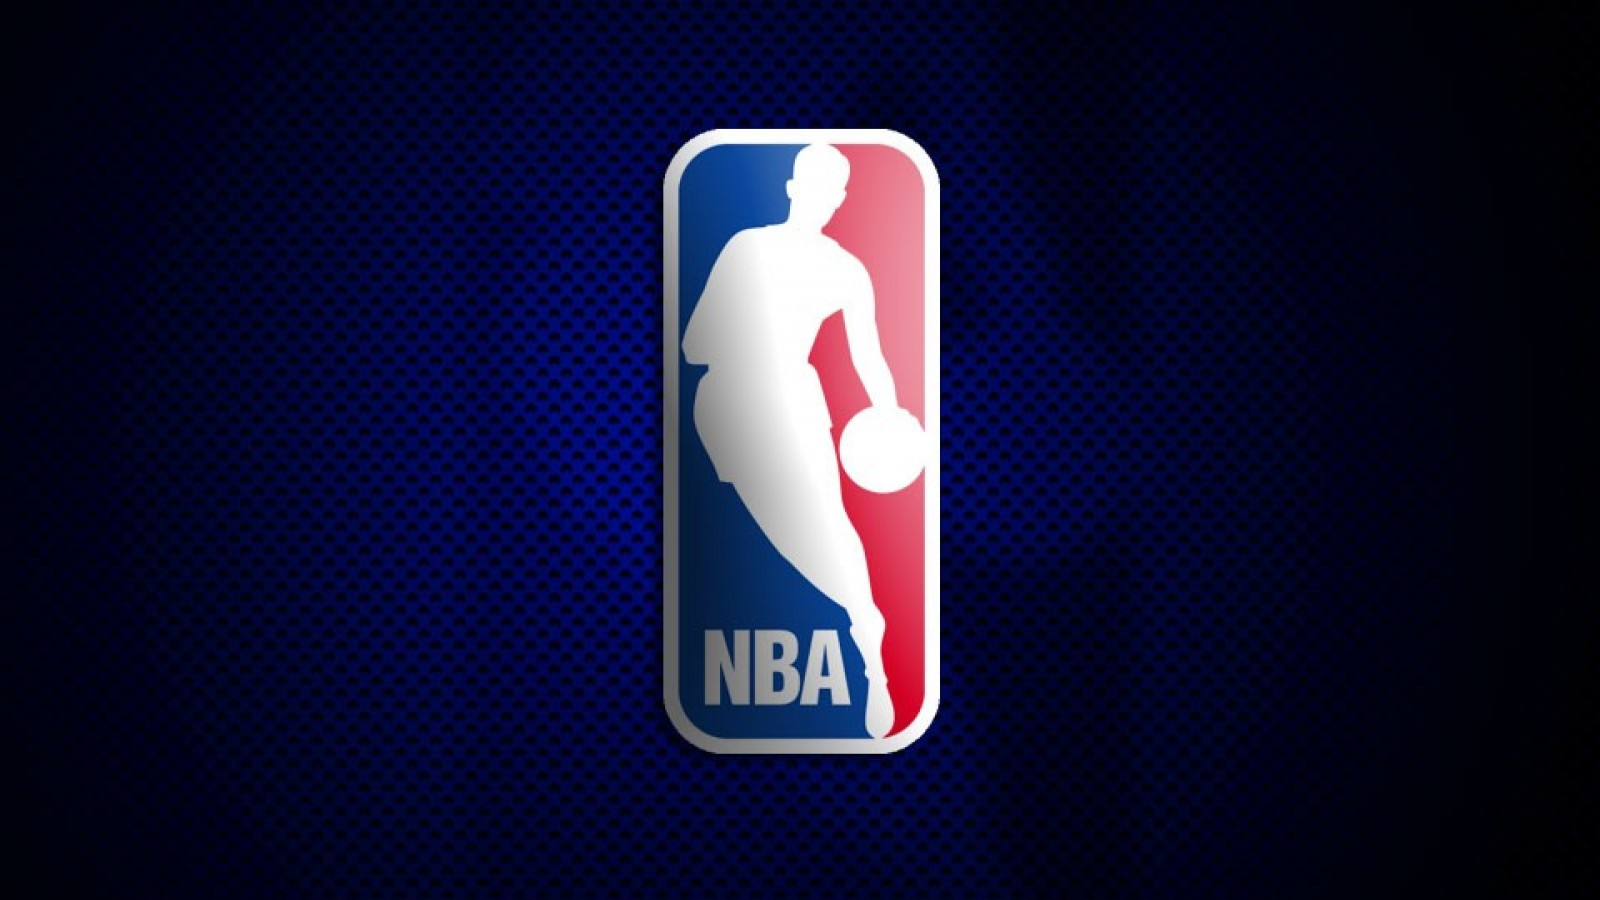 Nba Wallpapers Hd Desktop Backgrounds Images And Pictures 1600x900